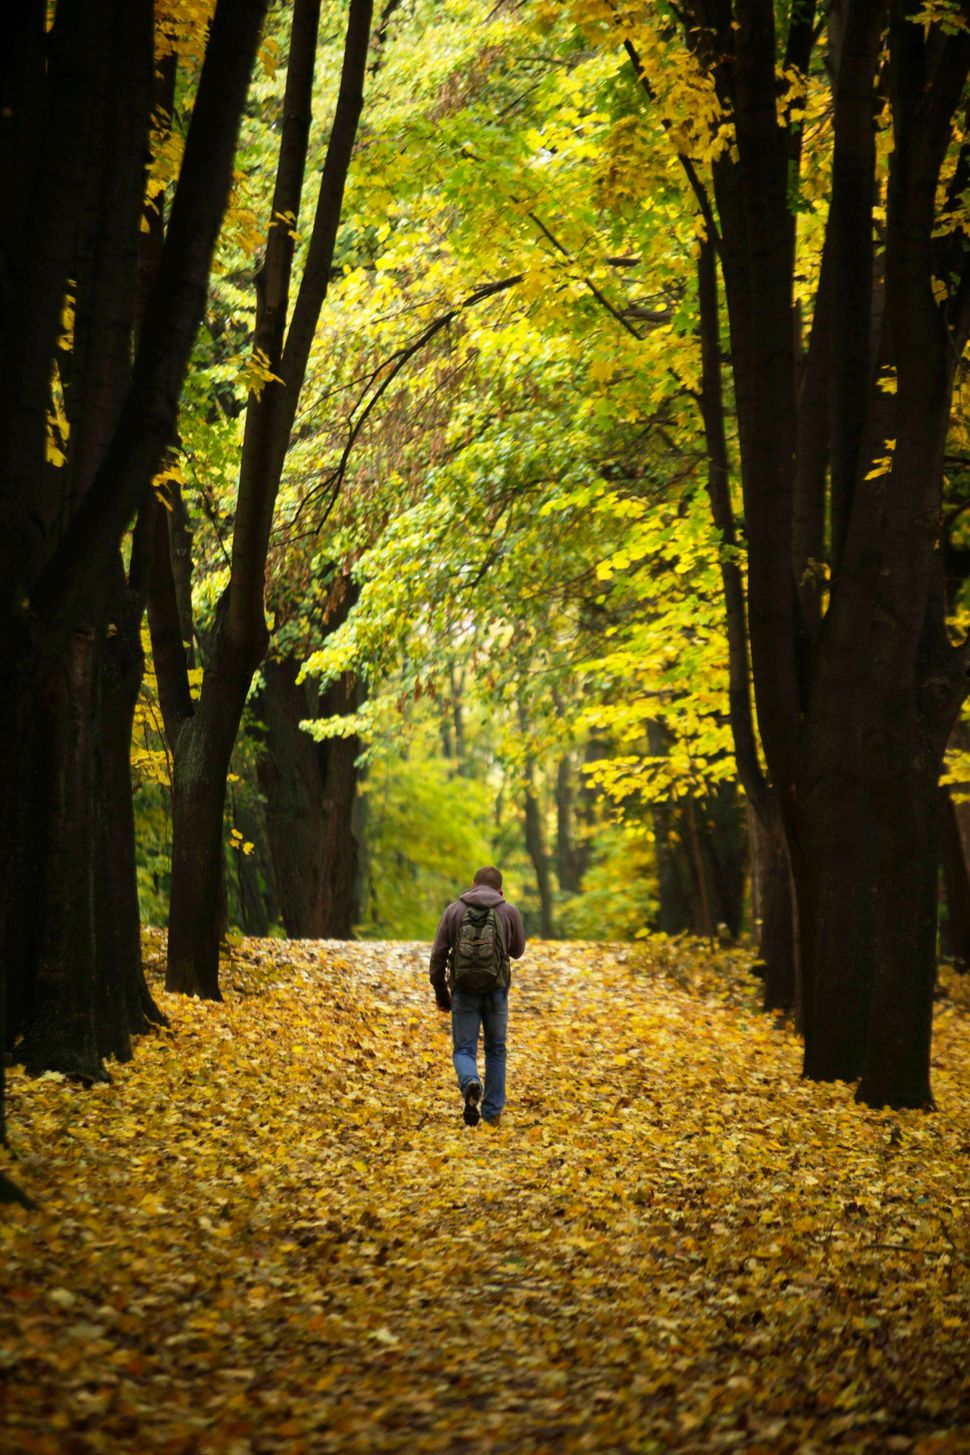 A man walks through Valea Morilor park in central Chisinau, Moldova, Tuesday, Oct. 27, 2009.(John McConnico/AP)